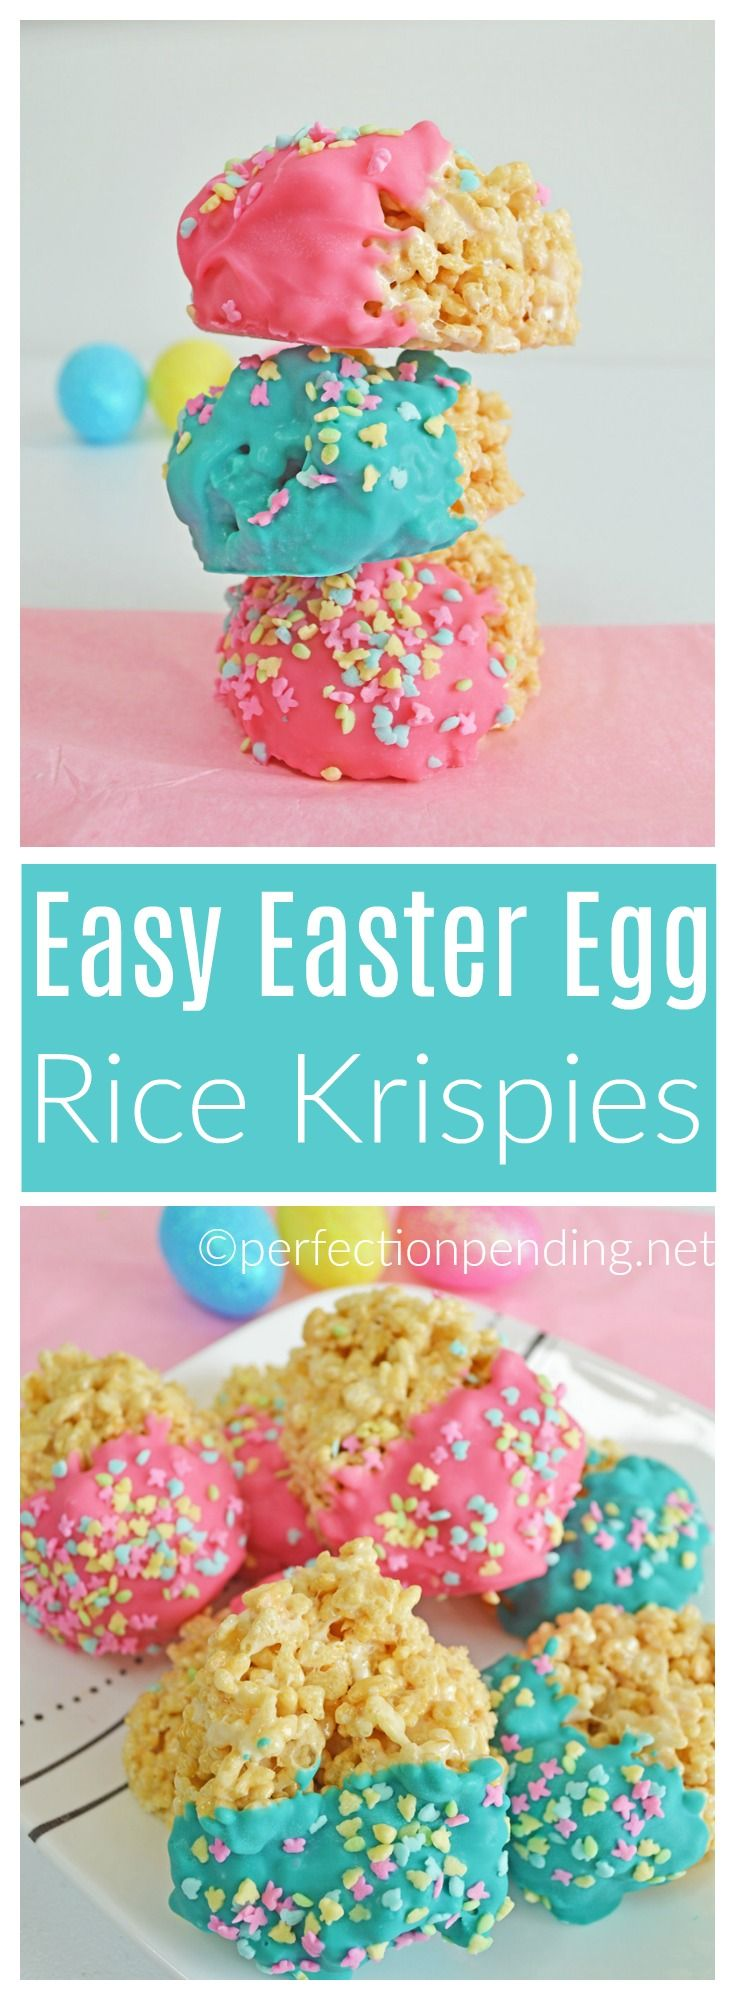 These Easter Egg Rice Krispie treats are a fun and easy alternative to making traditional rice krispie treats. These would be a fun kid friendly recipe to take for easter and it's so easy your kids can help make them too. These easter egg krispie treats are the perfect addition to any Easter activity. #easter #easterrecipe #diy #easterricekrispietreats #ricekrispies #recipe #eastertreats #easterideas #recipesforeaster alt=